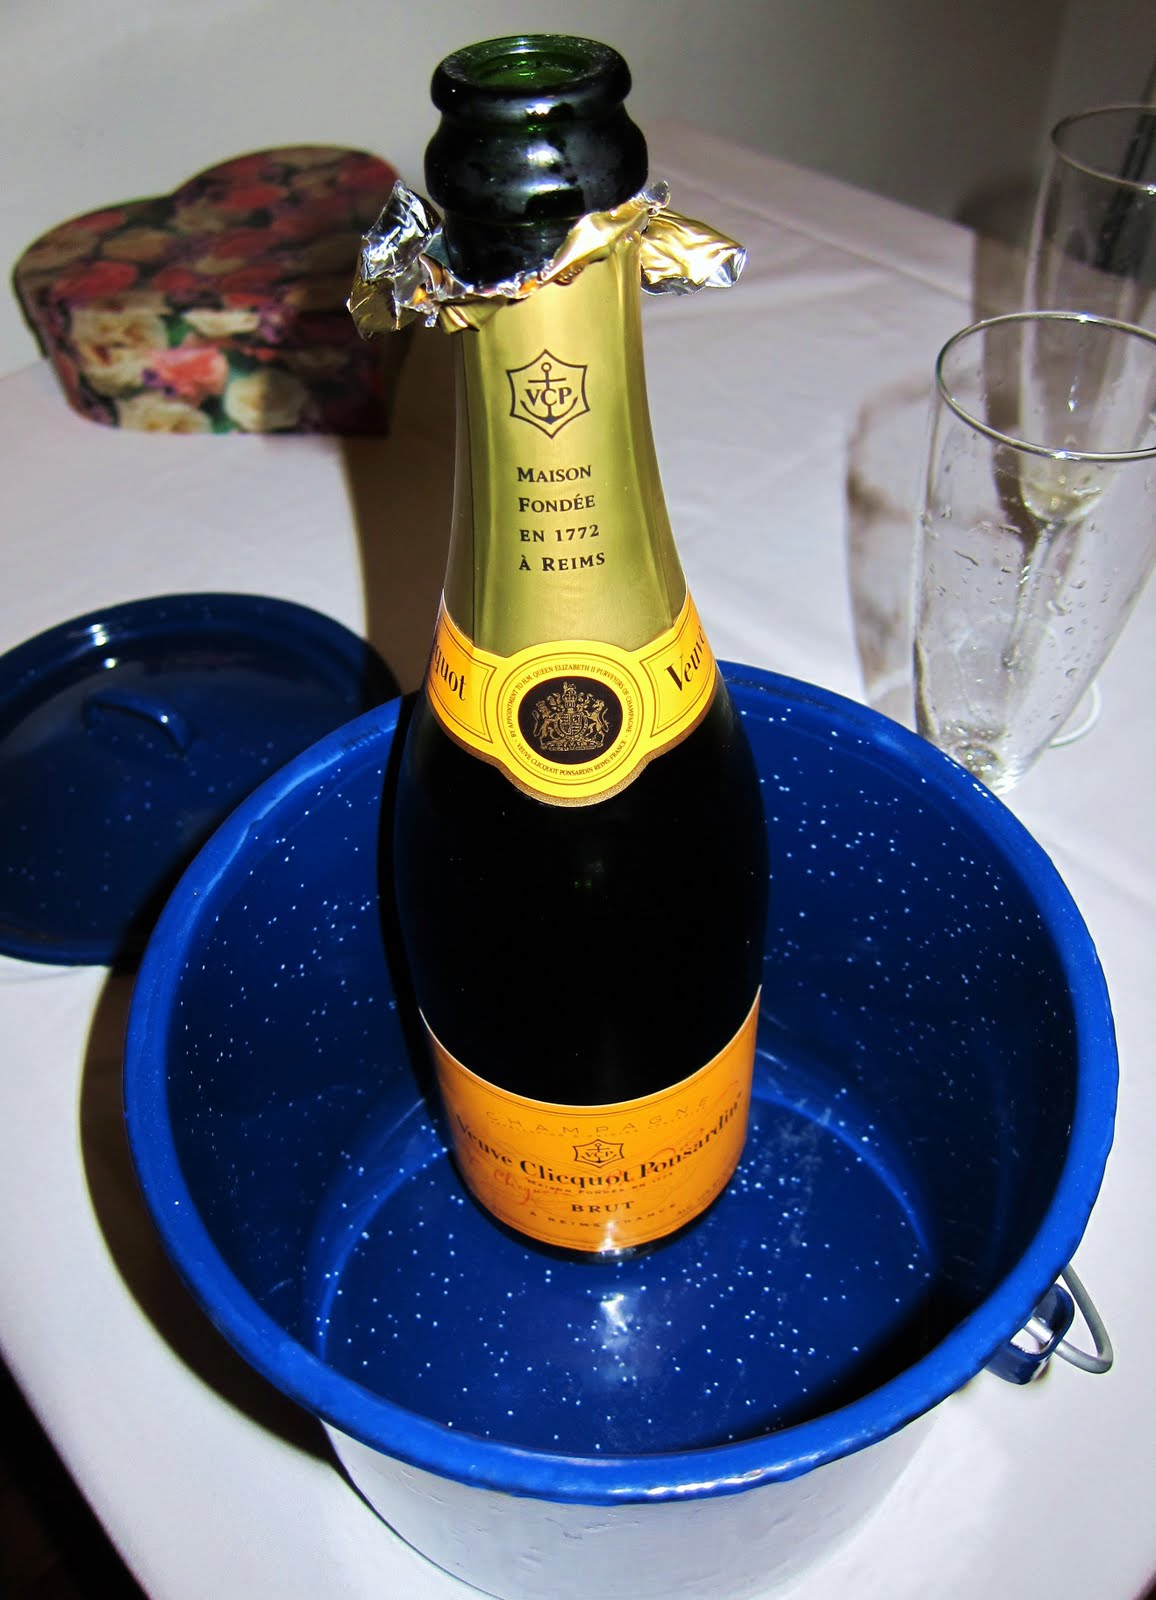 To go along with the chocolates, we enjoyed a bottle of Veuve Clicquot ...